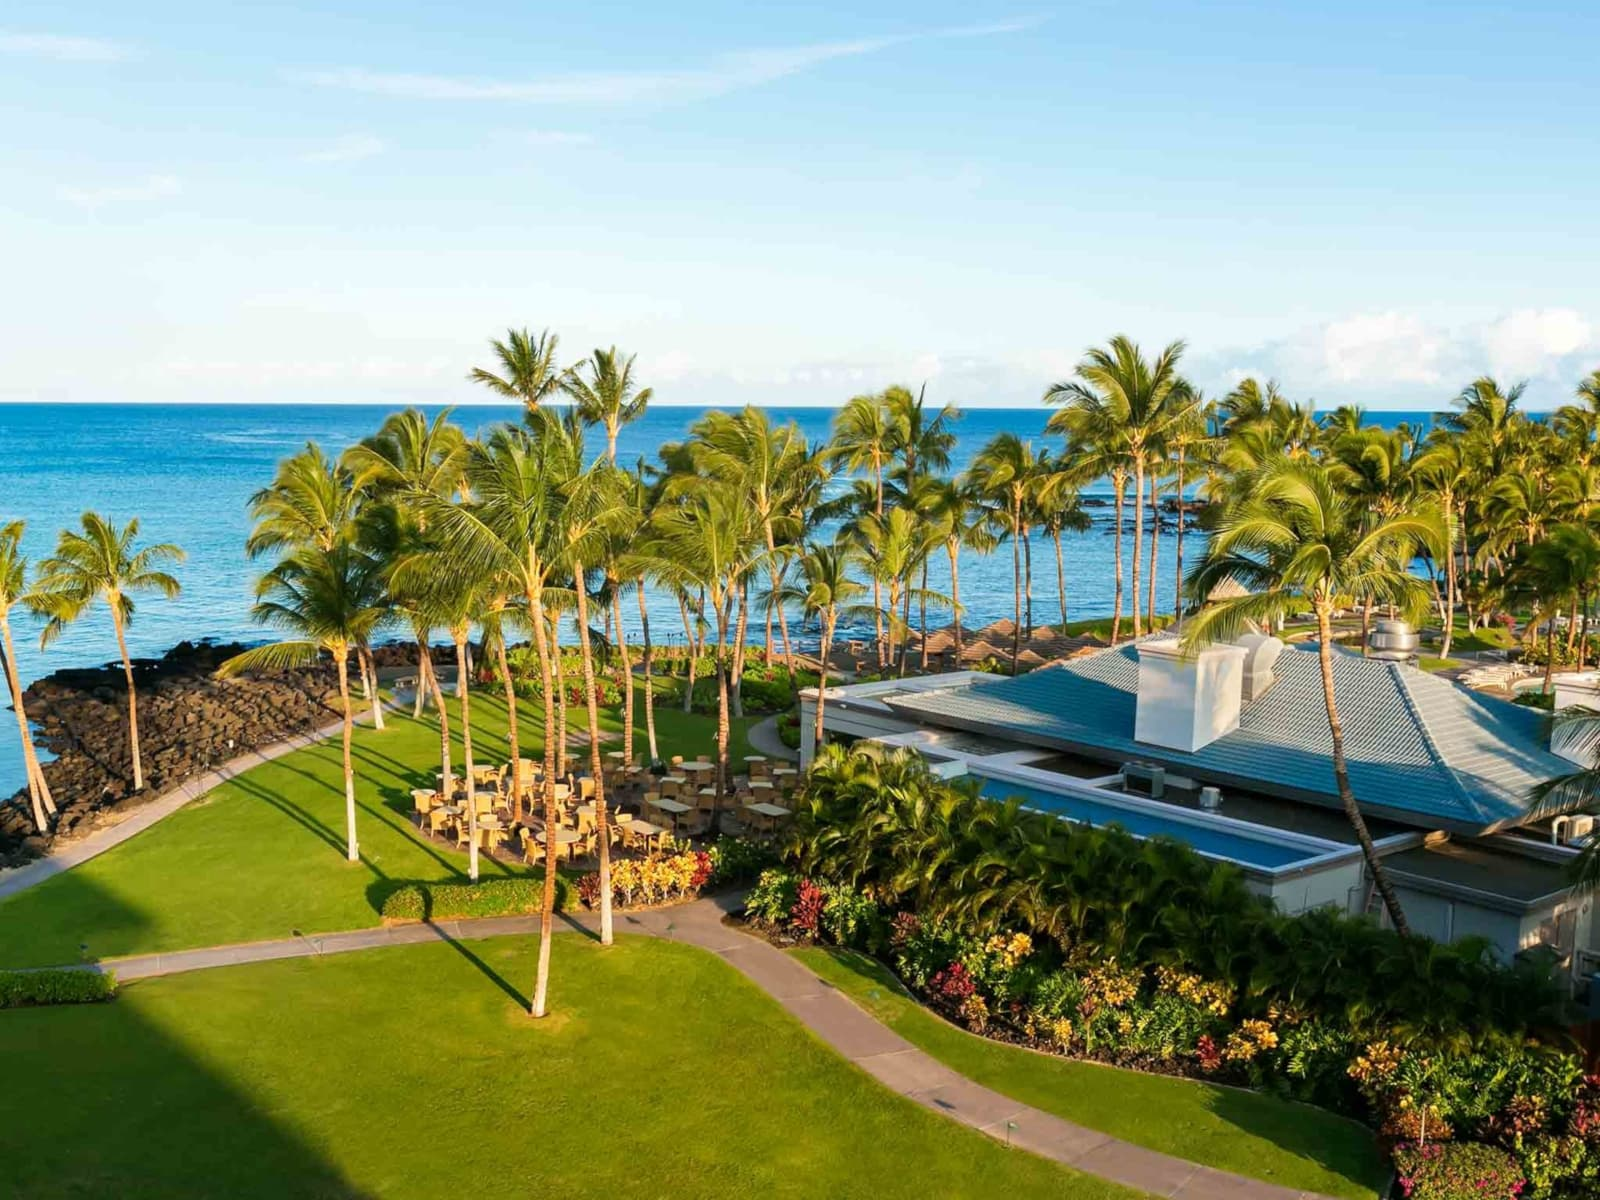 The Fairmont Orchid - one of the best tennis resorts for your tennis holidays in Hawaii